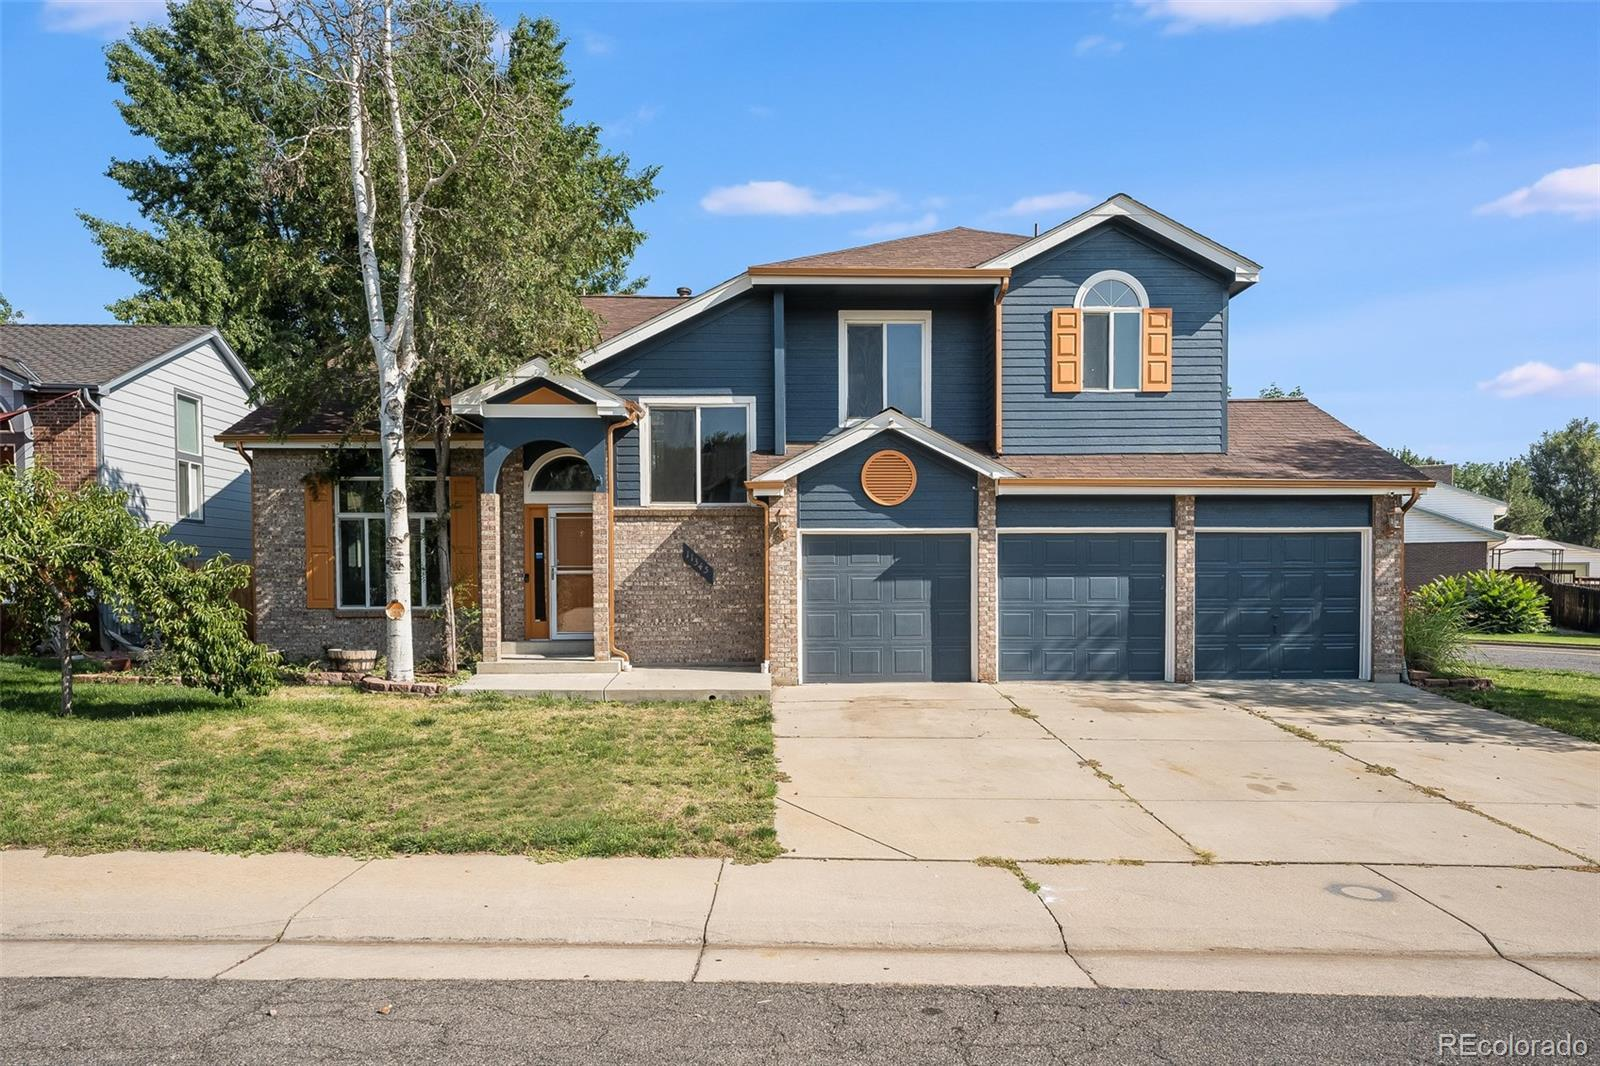 11345 W 67th Place, Arvada, CO 80004 - #: 5217071